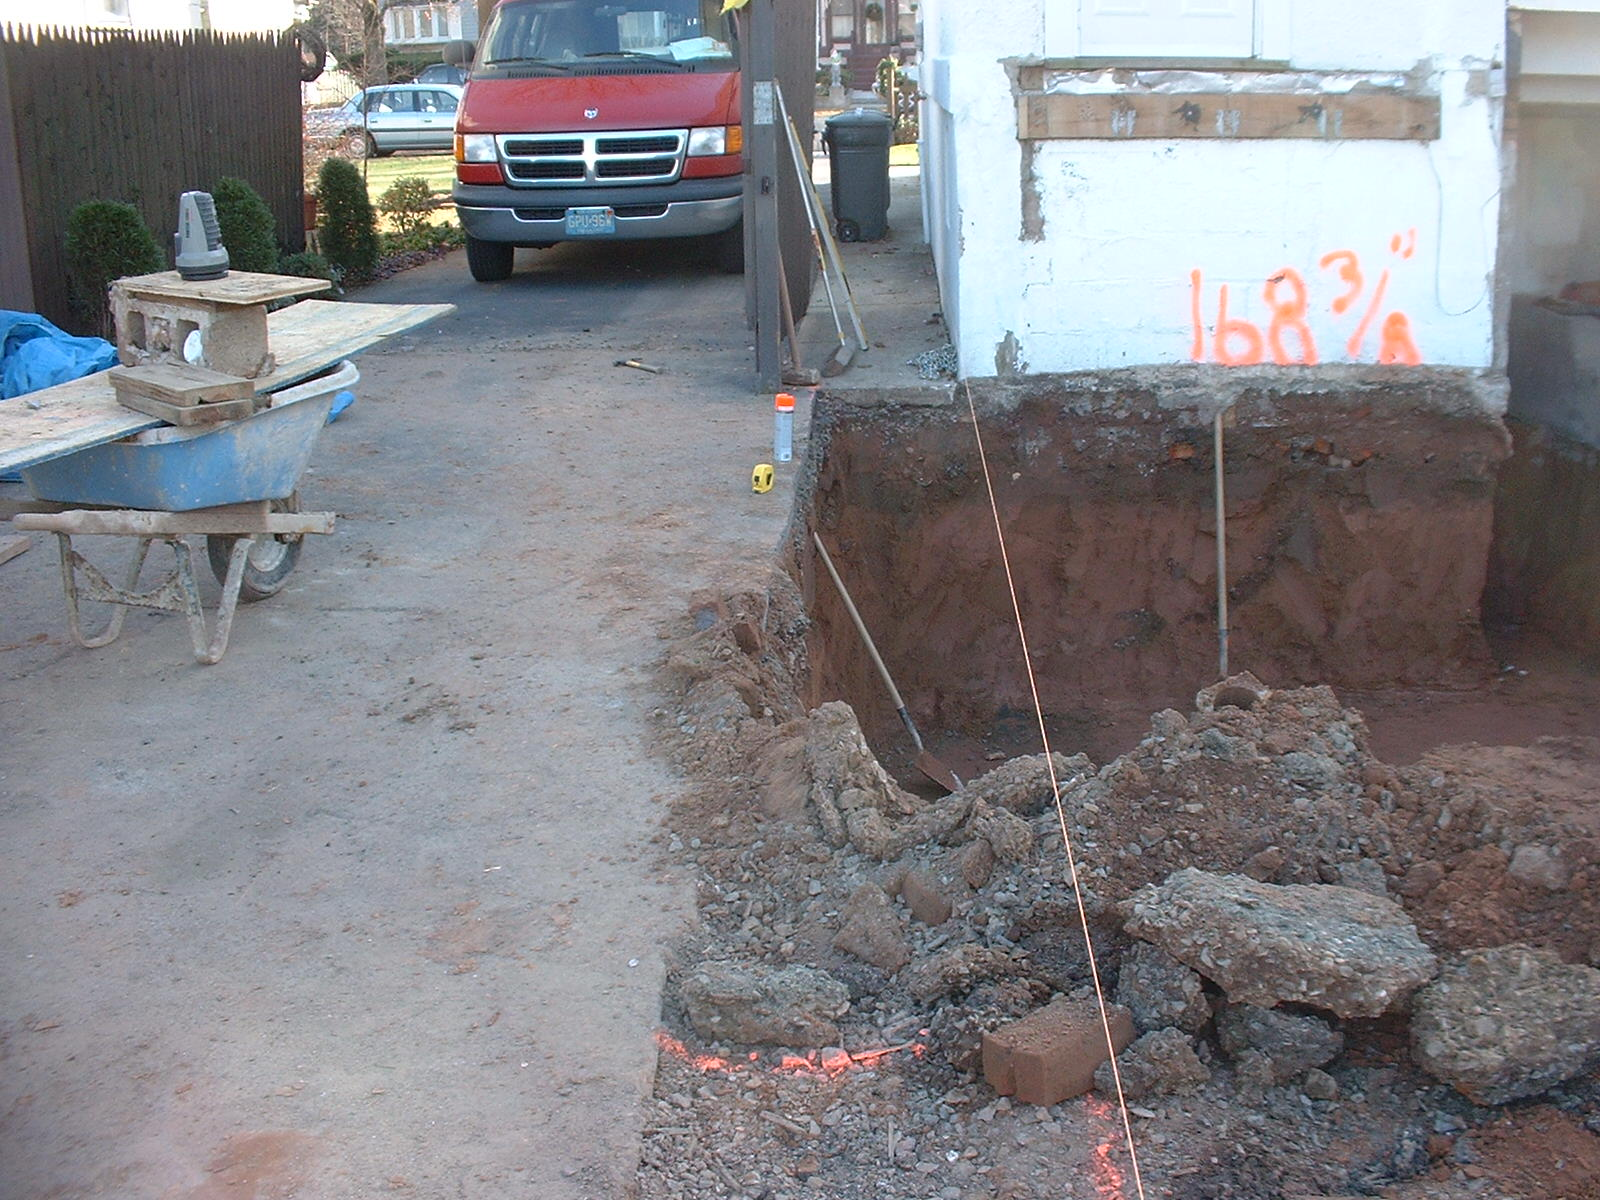 The hole for the basement is almost finished now. Just a few more hours of daylight to go!